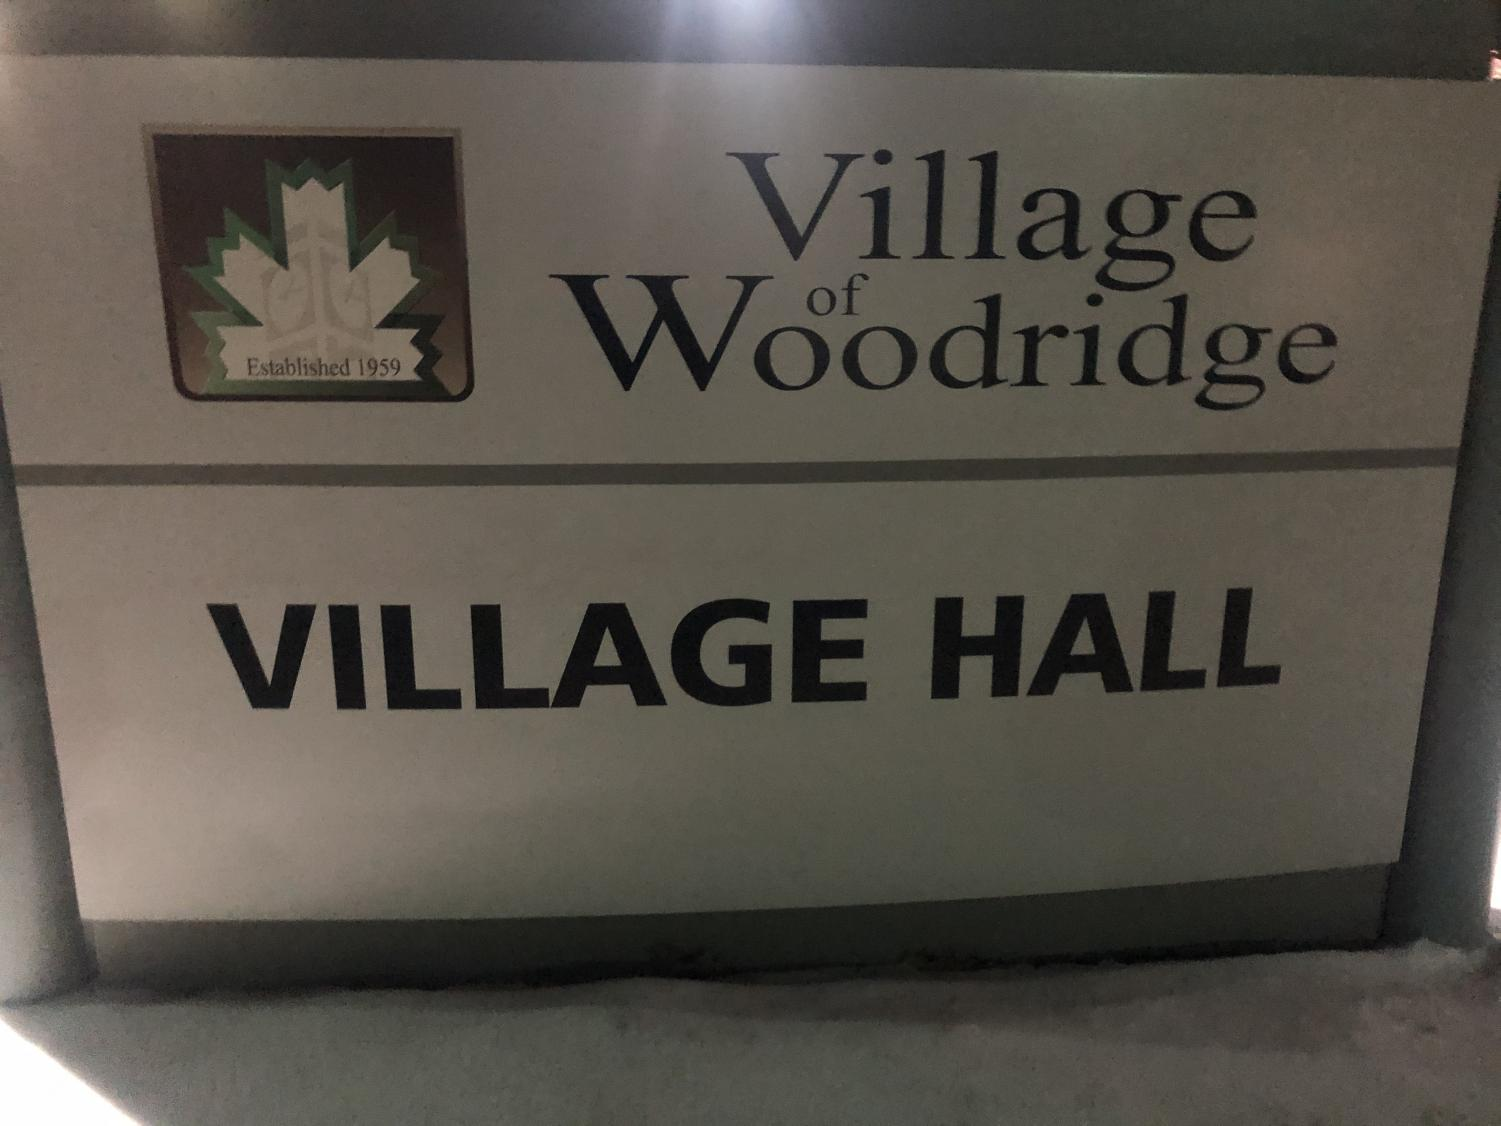 At the bi-monthly Woodridge Village Board meeting last night, the Council voted to raise the minimum tobacco age from 18-years-old to 21-years-old.